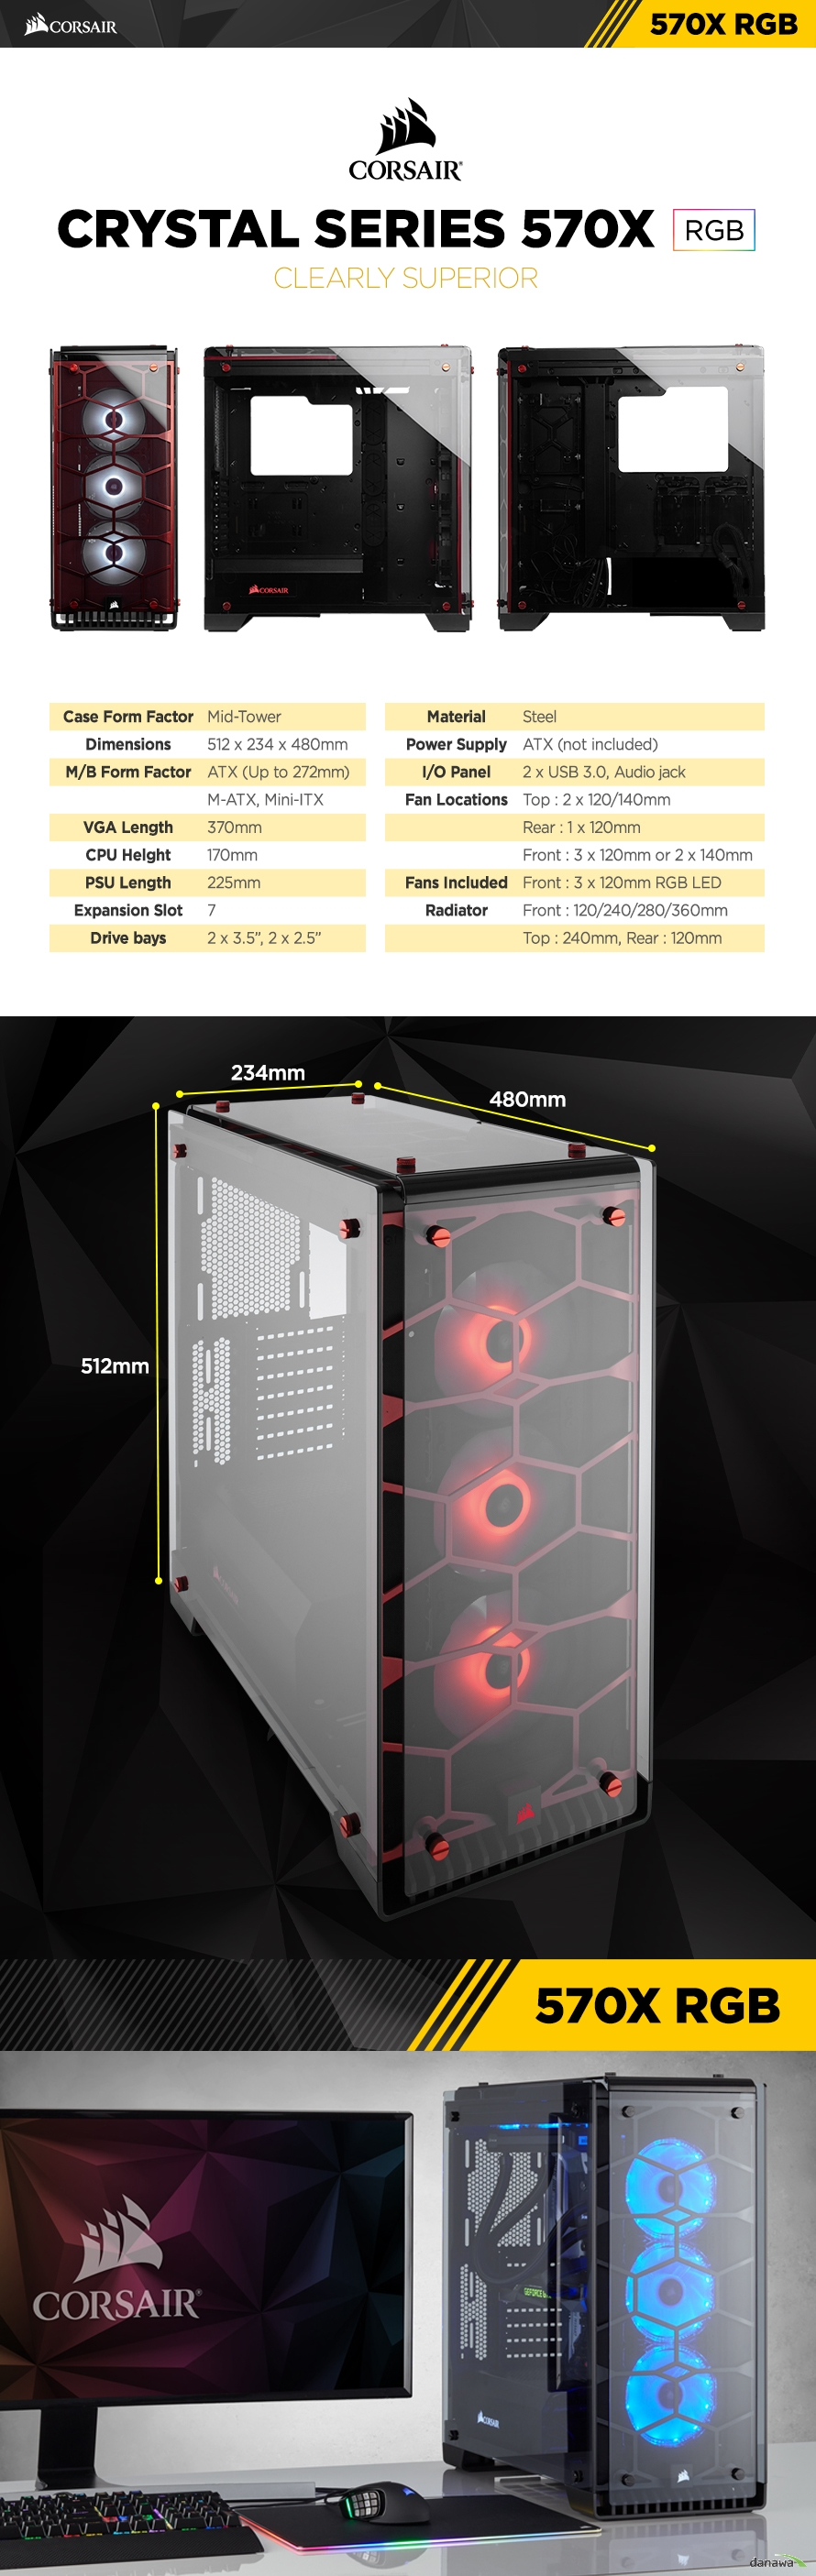 "Case Form Factor	Mid-TowerDimensions	512 x 234 x 480mmM/B Form Factor	ATX (Up to 272mm)	M-ATX, Mini-ITXVGA Length	370mmCPU Helght	170mmPSU Length	225mmExpansion Slot	7Drive bays	2 x 3.5"", 2 x 2.5""Material	SteelPower Supply	ATX (not included)I/O Panel	2 x USB 3.0, Audio jackFan Locations	Top : 2 x 120/140mm	Rear : 1 x 120mm	Front : 3 x 120mm or 2 x 140mm	Front : 3 x 120mm RGB LEDFans Included	Front : 120/240/280/360mmRadiator	Top : 240mm, Rear : 120mm"